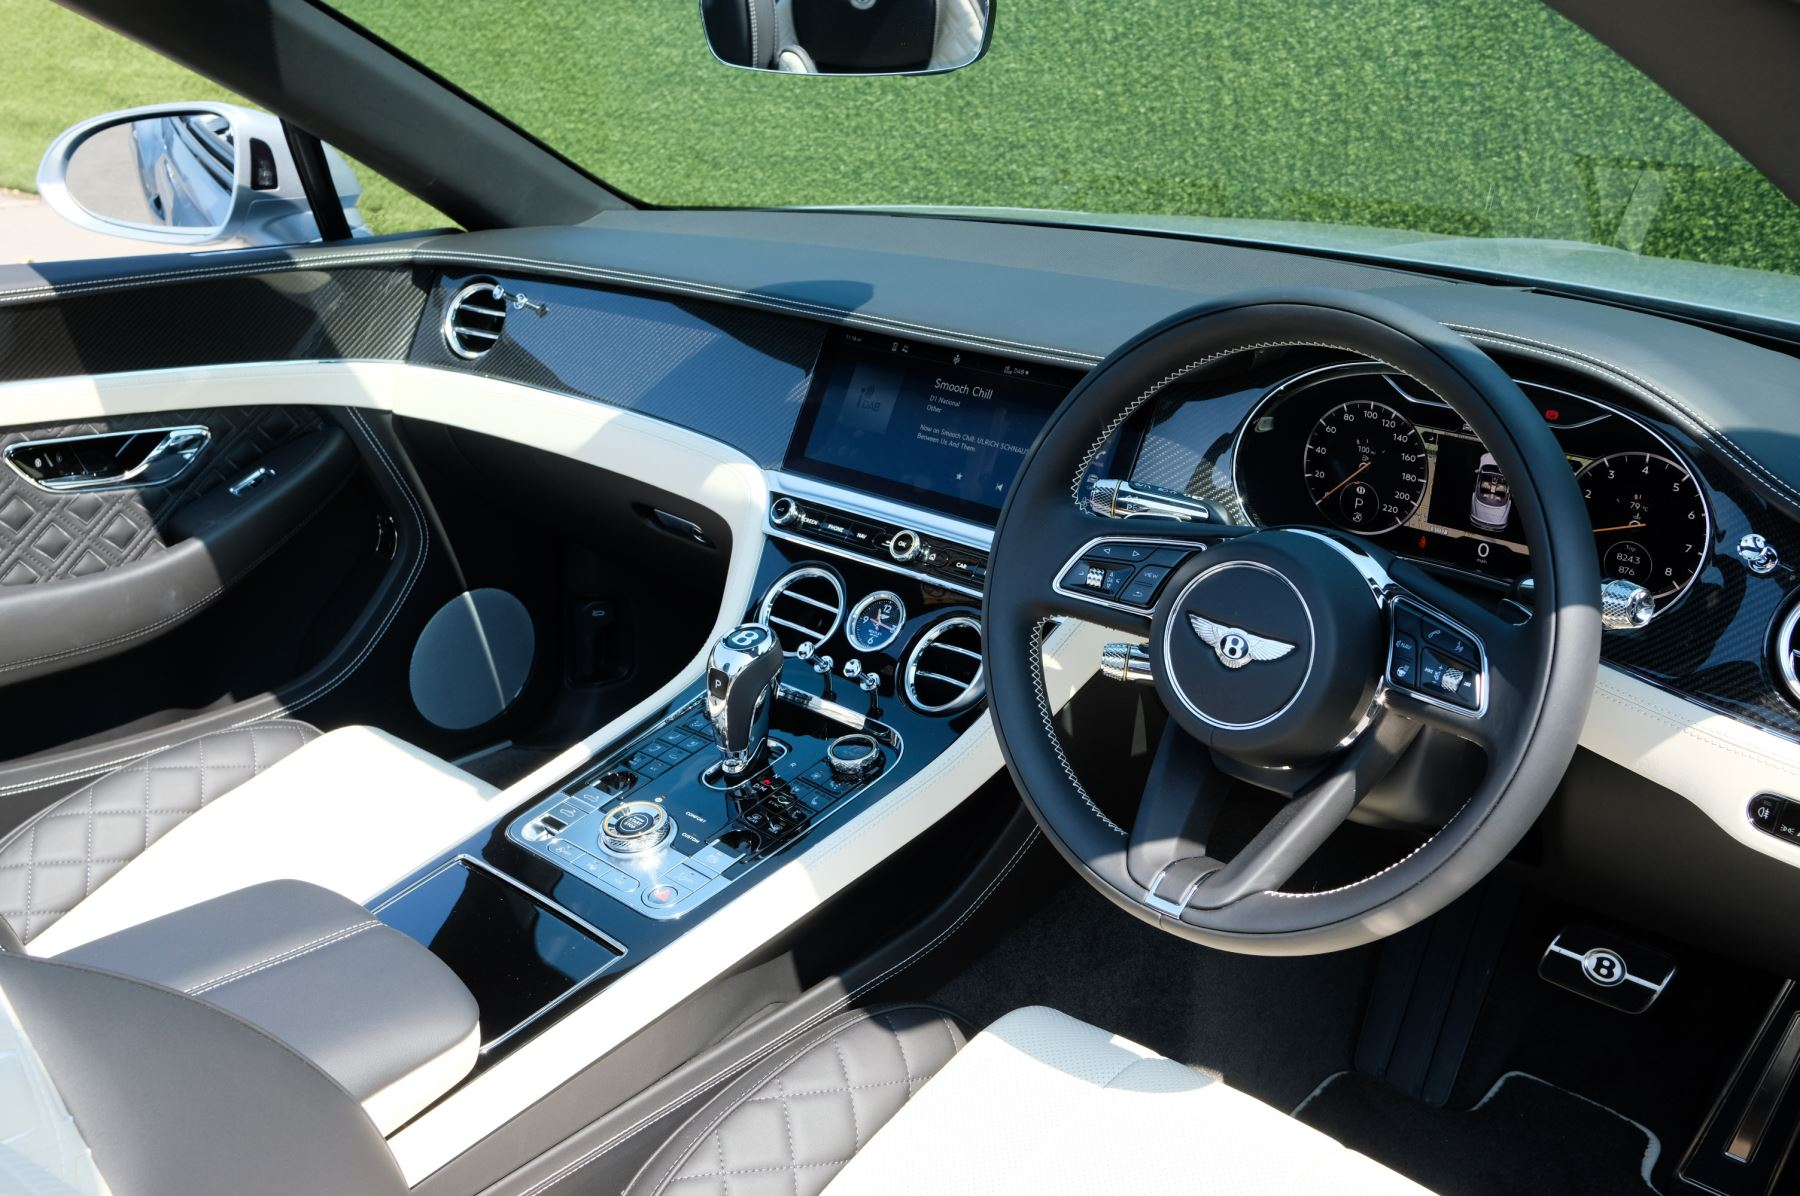 Bentley Continental GTC 4.0 V8 - Mulliner Driving Specification and Blackline Specification with 22 Inch Alloys image 12